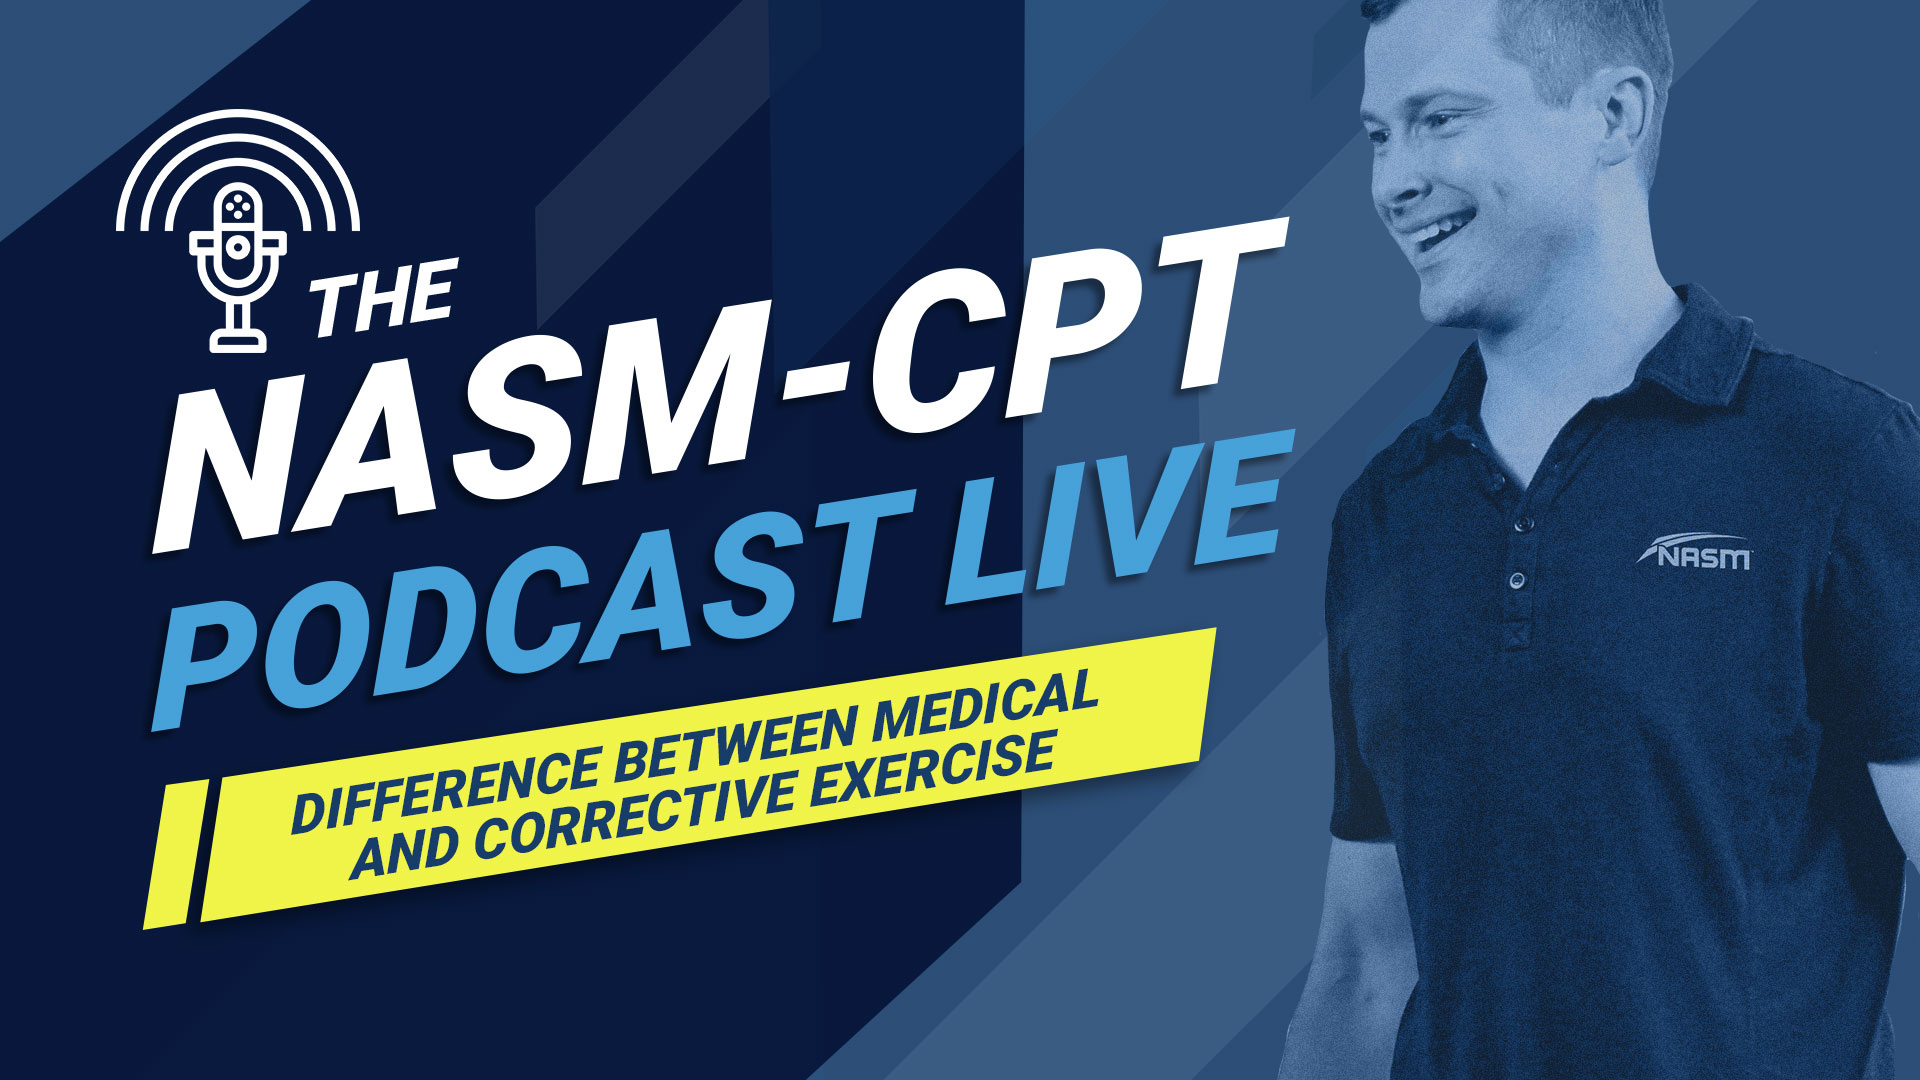 Clenbuterolfr-CPT podcast on corrective versus medical exercise